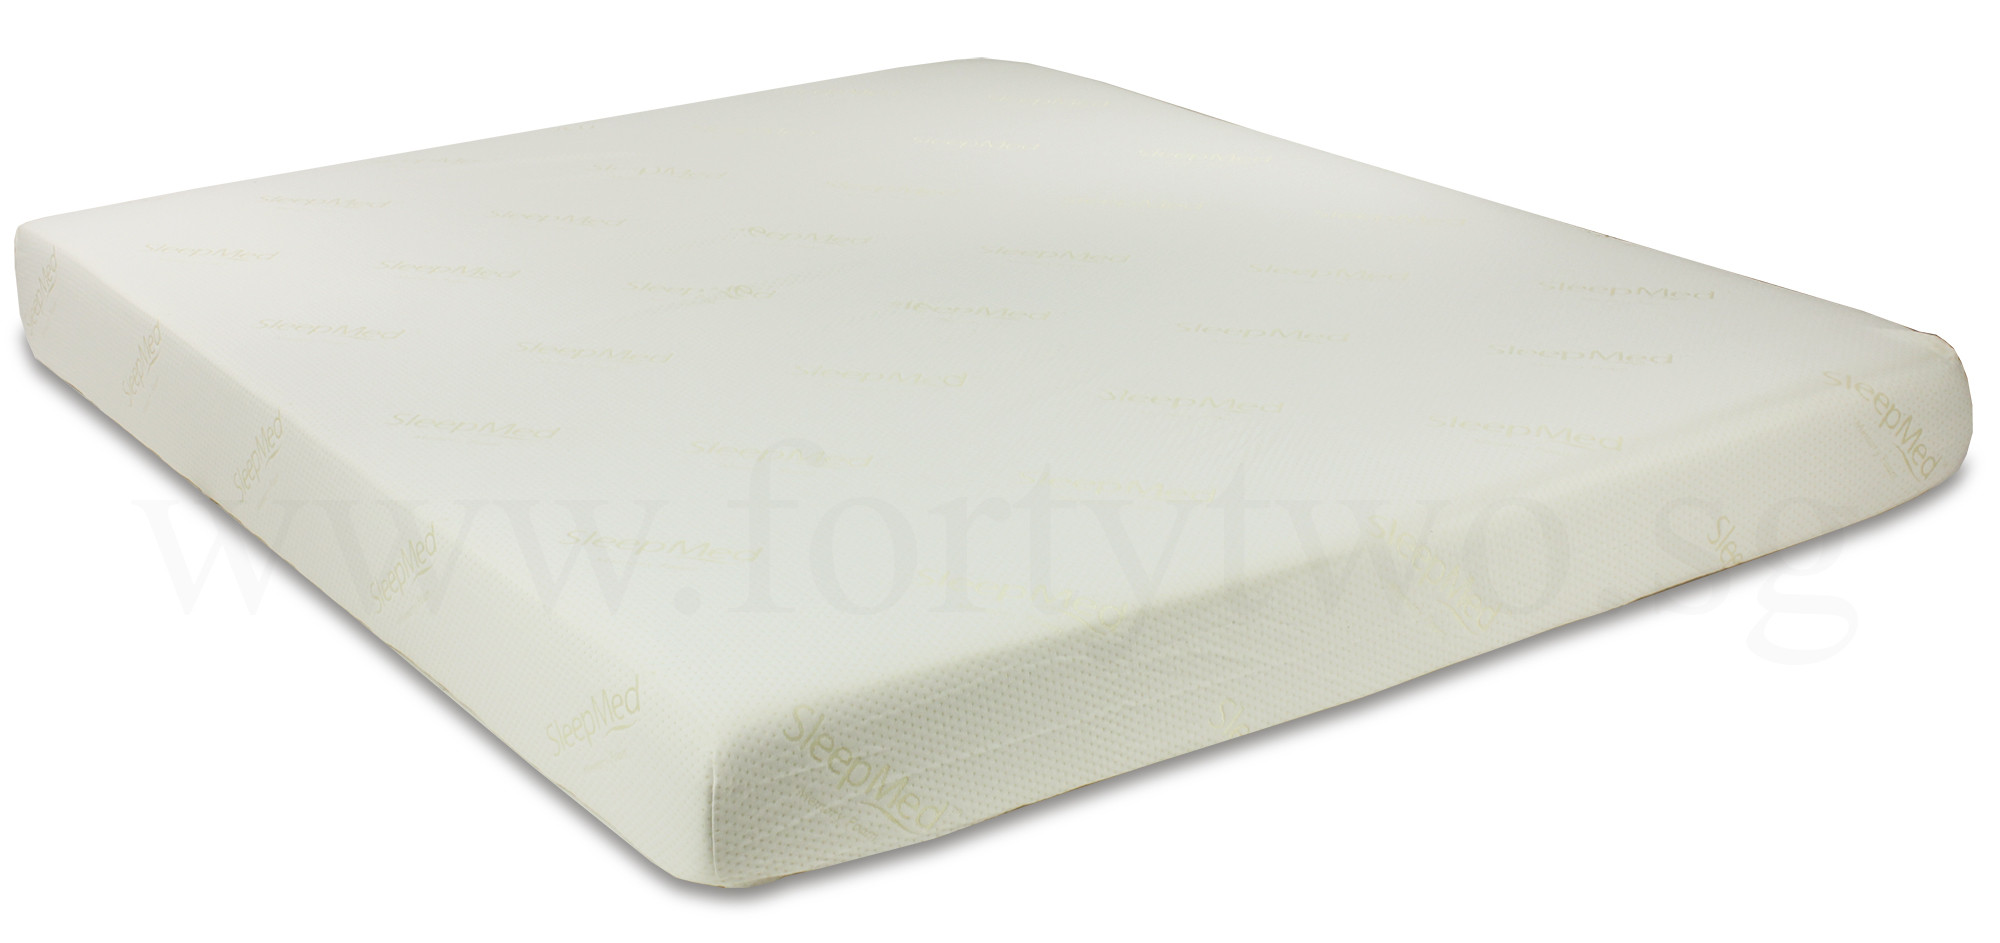 sleepmed memory foam mattress (queen in 7 inch) | furniture & home